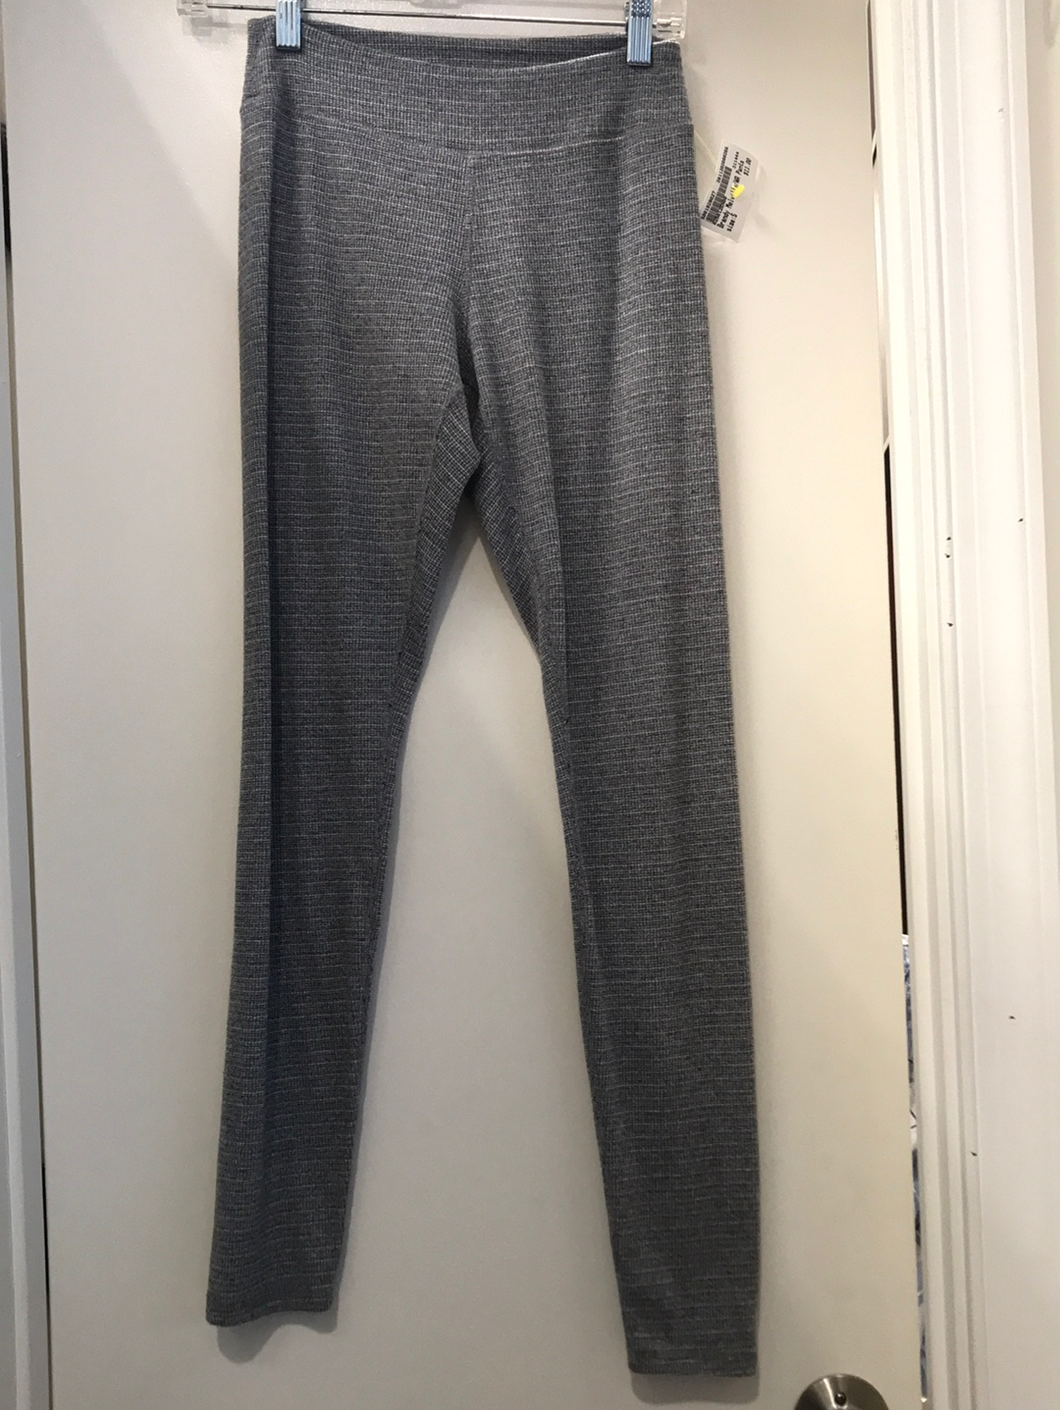 Brandy Melville Athletic Pants Size Small